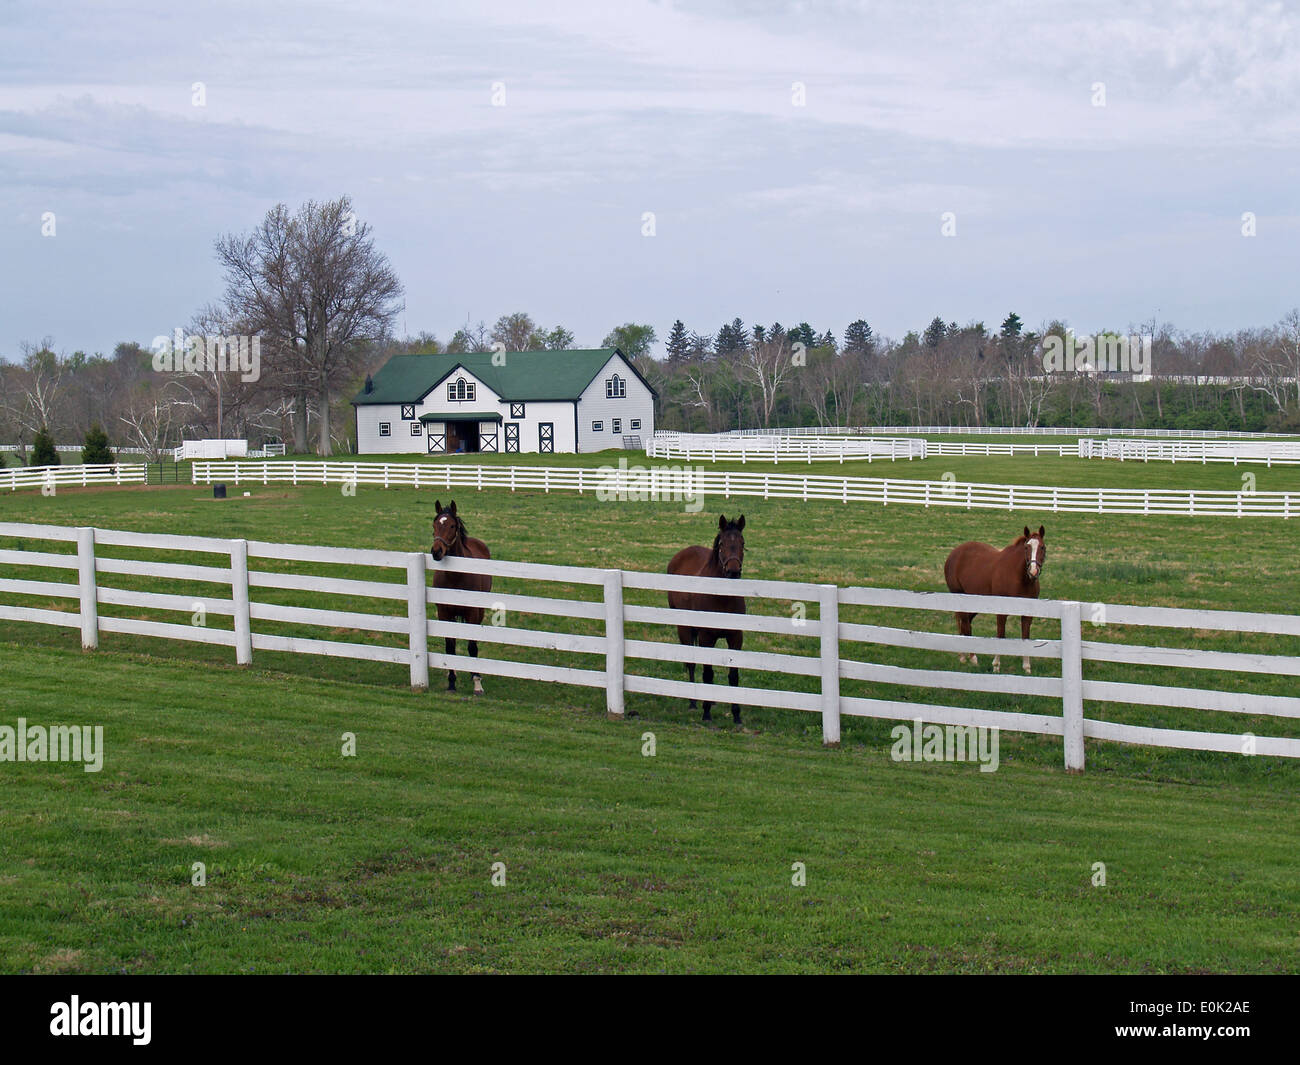 Thoroughbred horses at the fence,Lexington,Kentucky - Stock Image